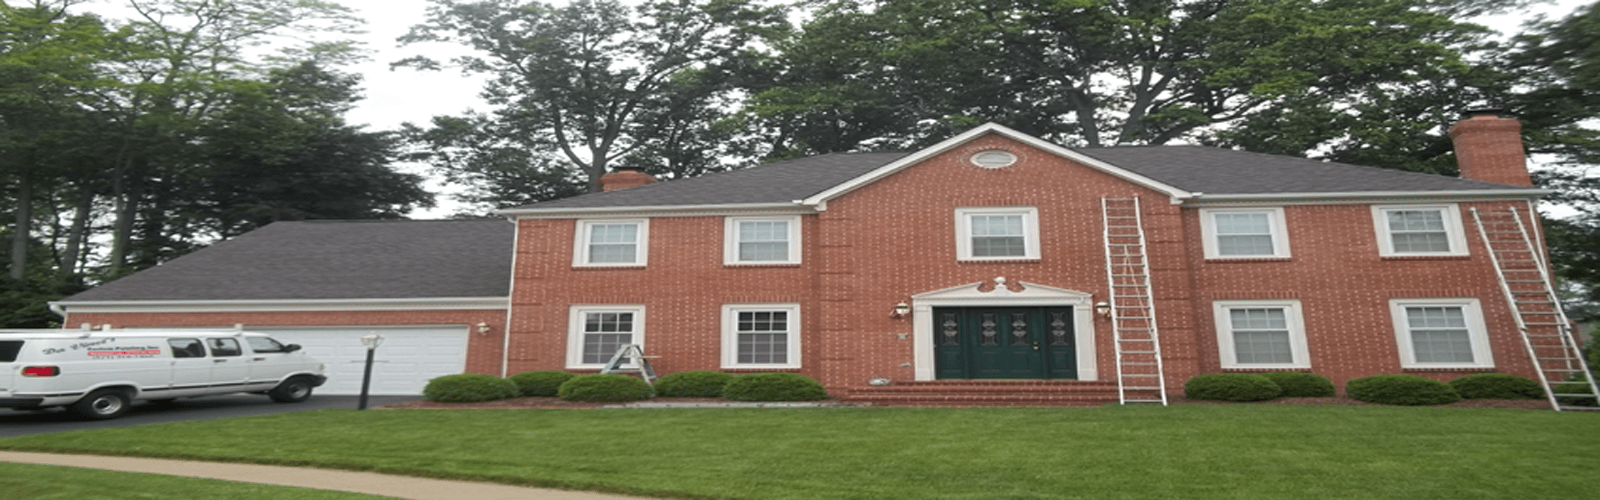 Fairfax Exterior Painting Project